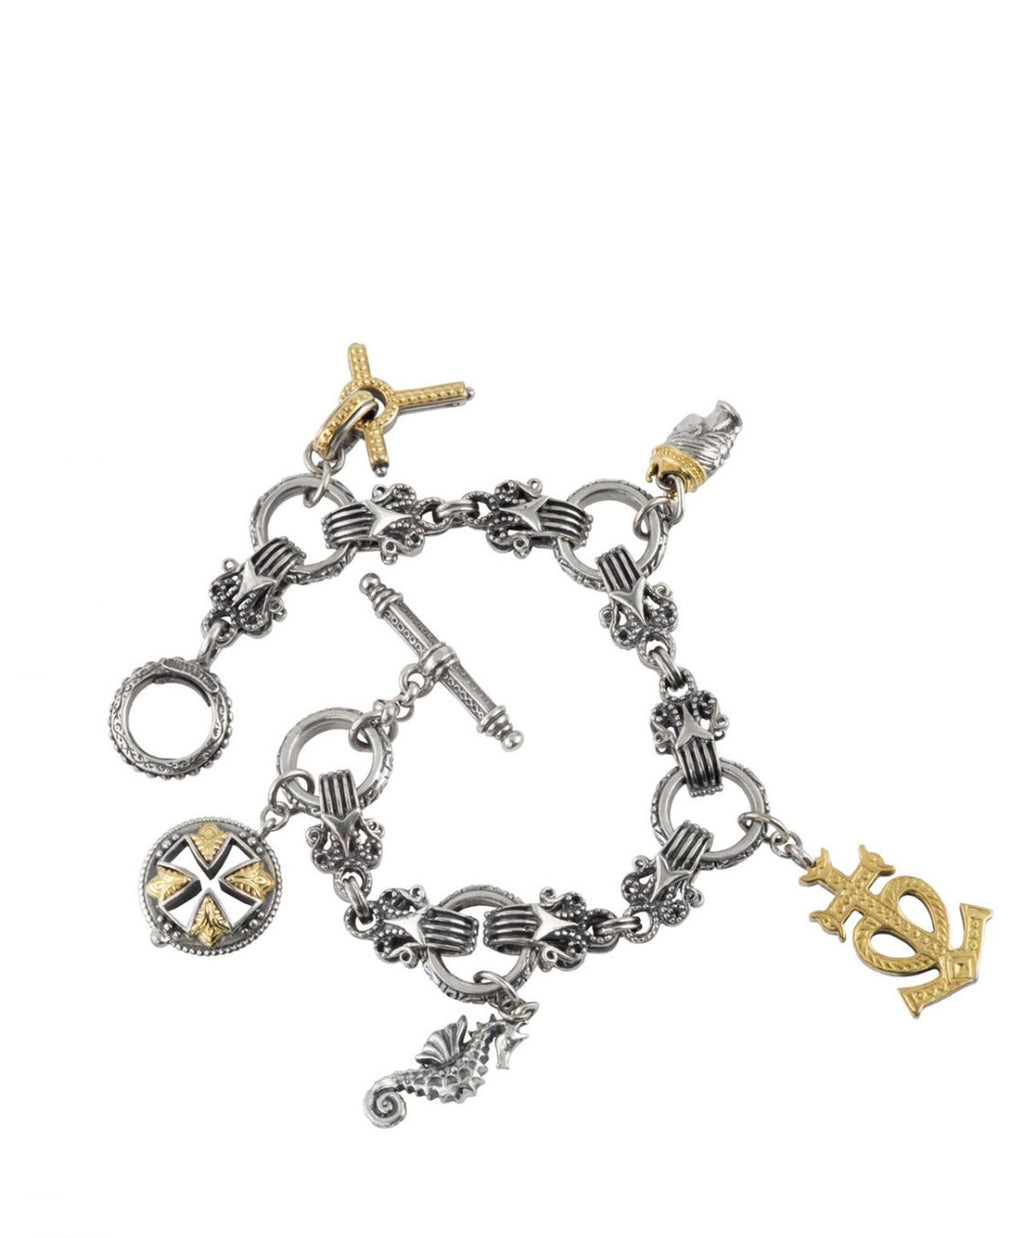 Silver and 18k Gold Charm Bracelet